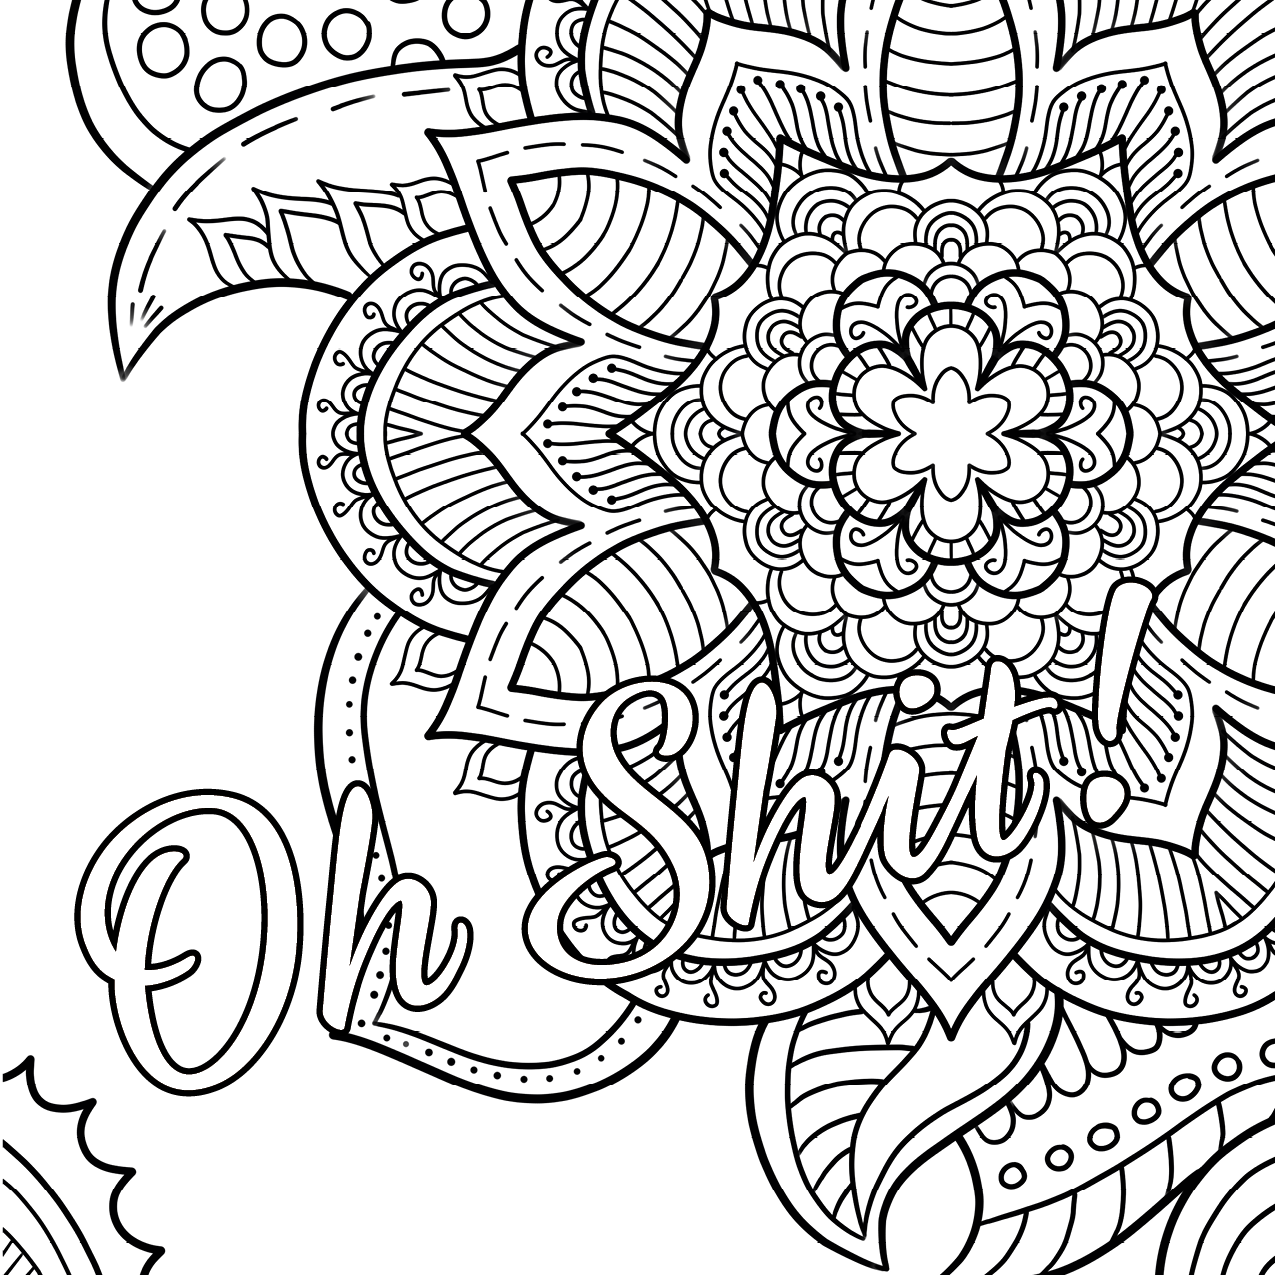 1275x1275 Easy Free Printable Coloring Pages For Adults Swear Words Only